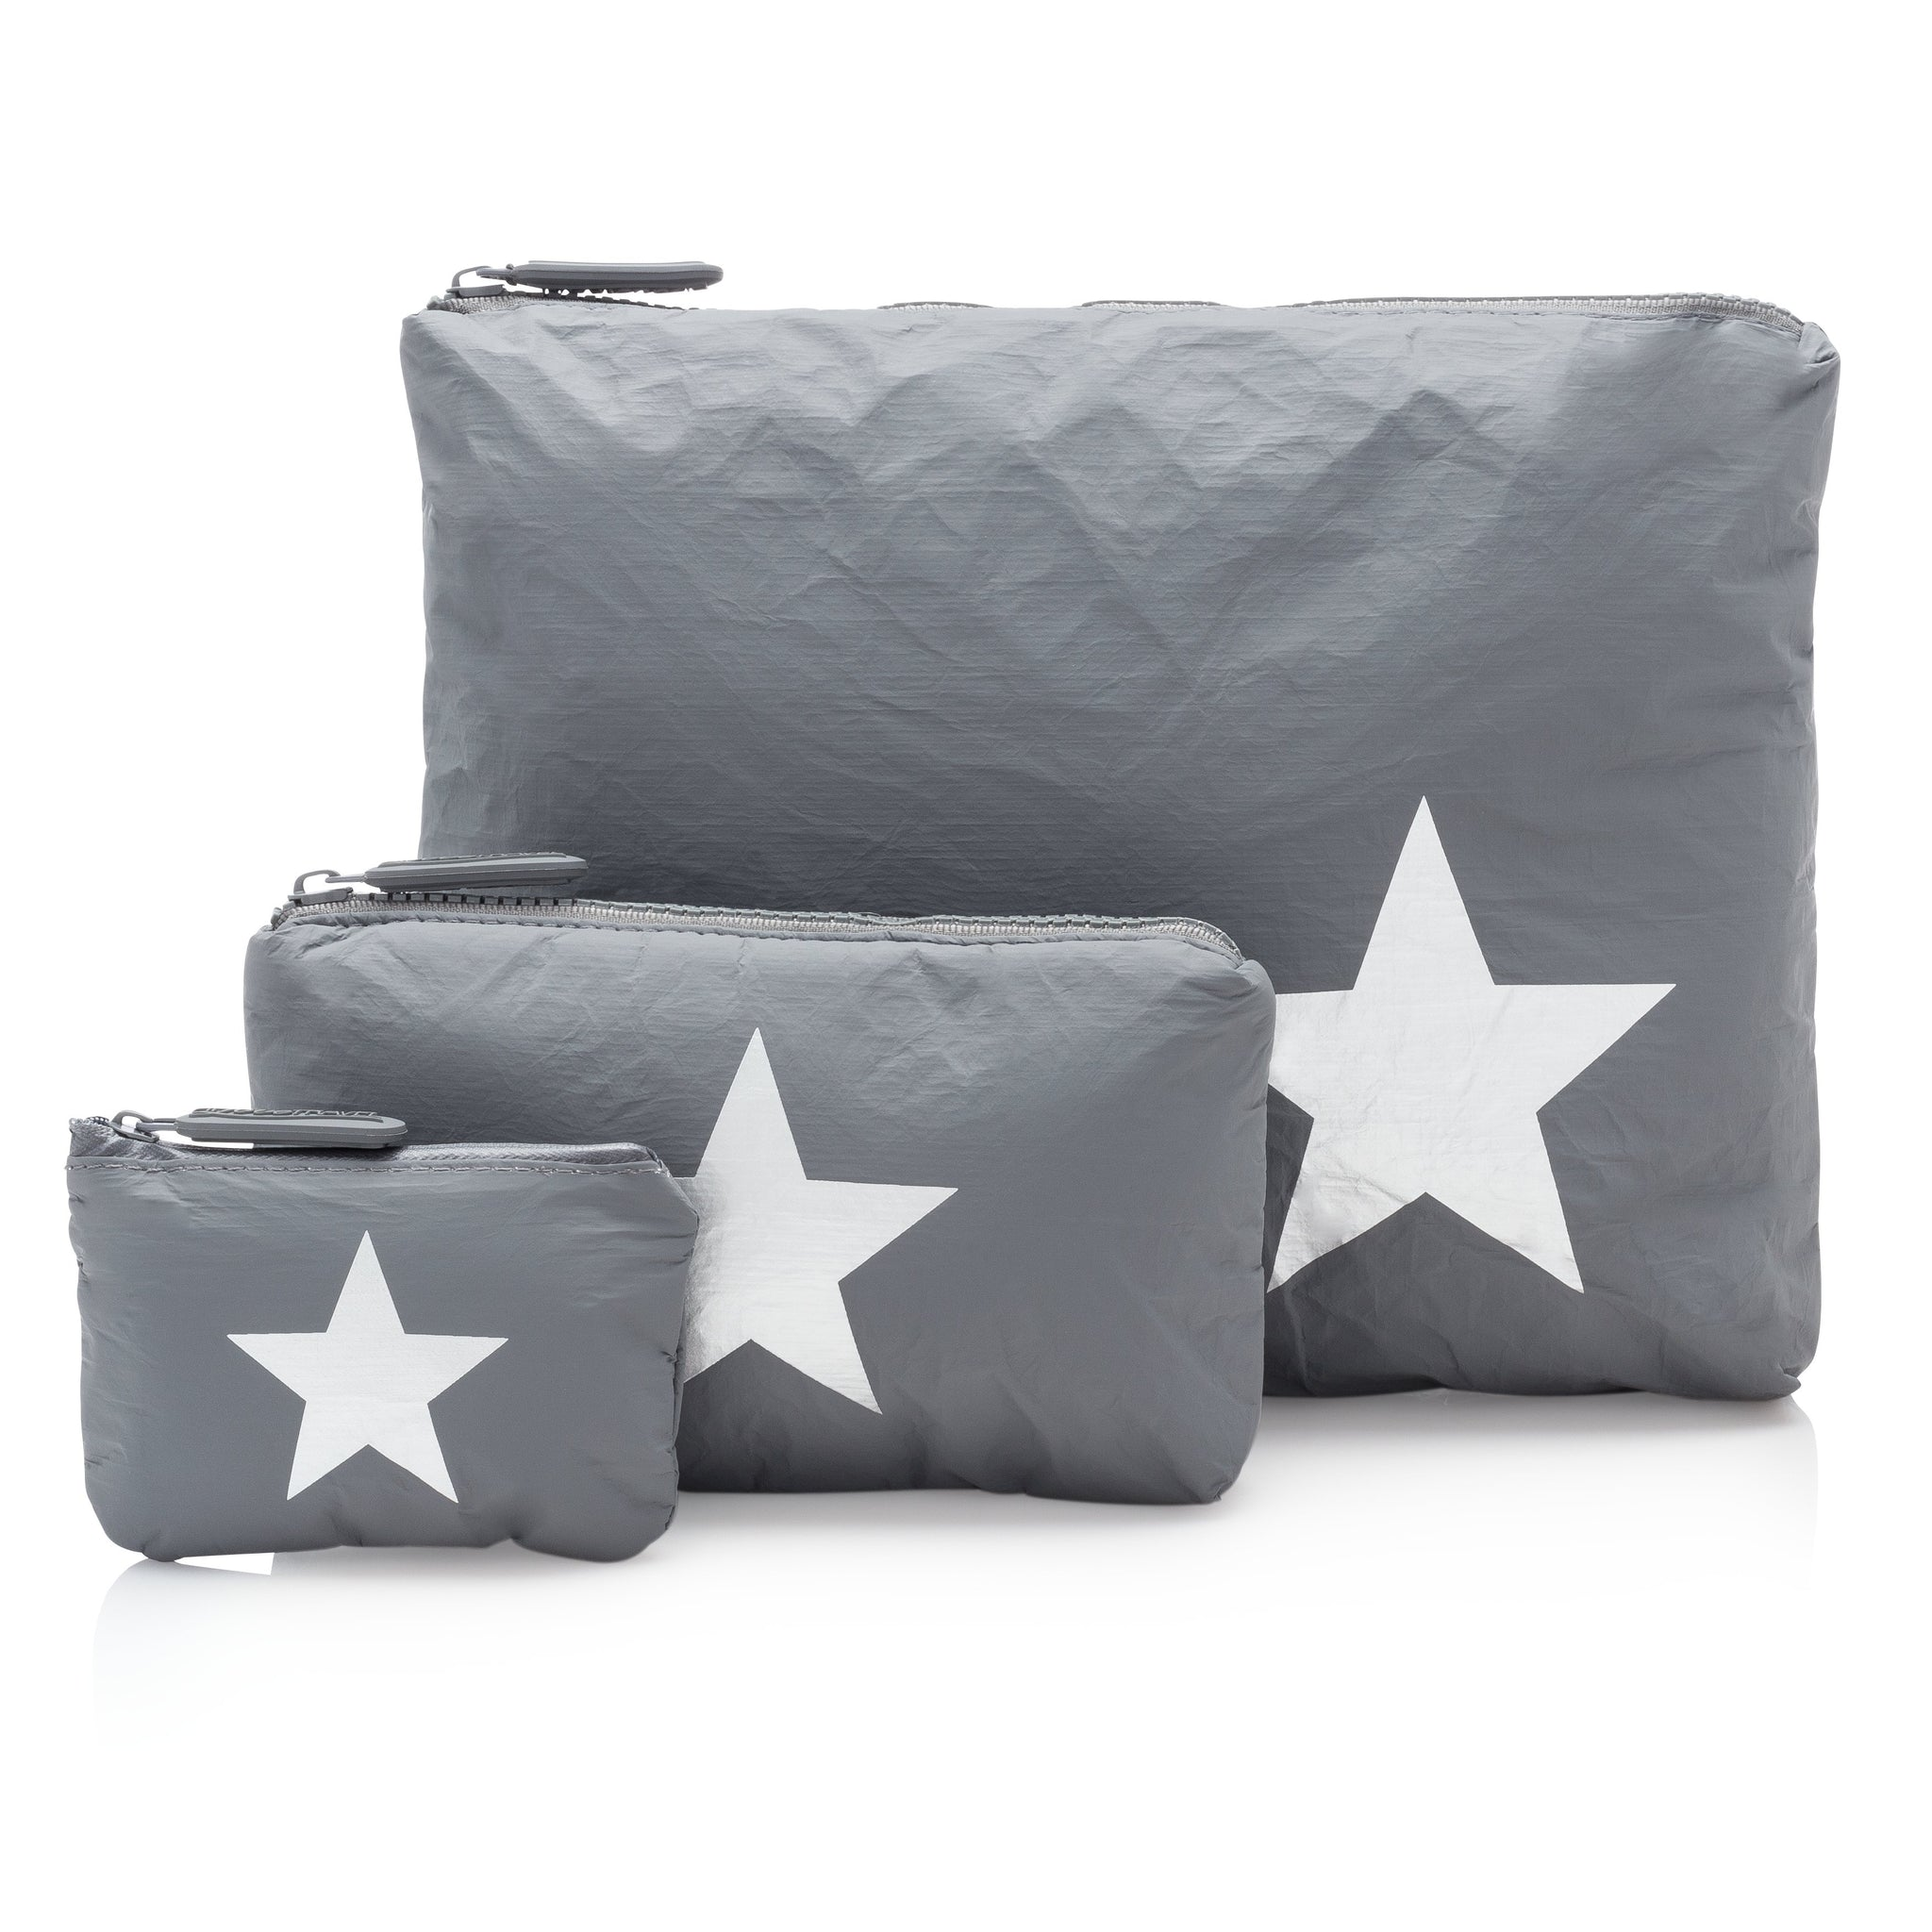 Set of Three Packs - Cool Gray with a Metallic Silver Star